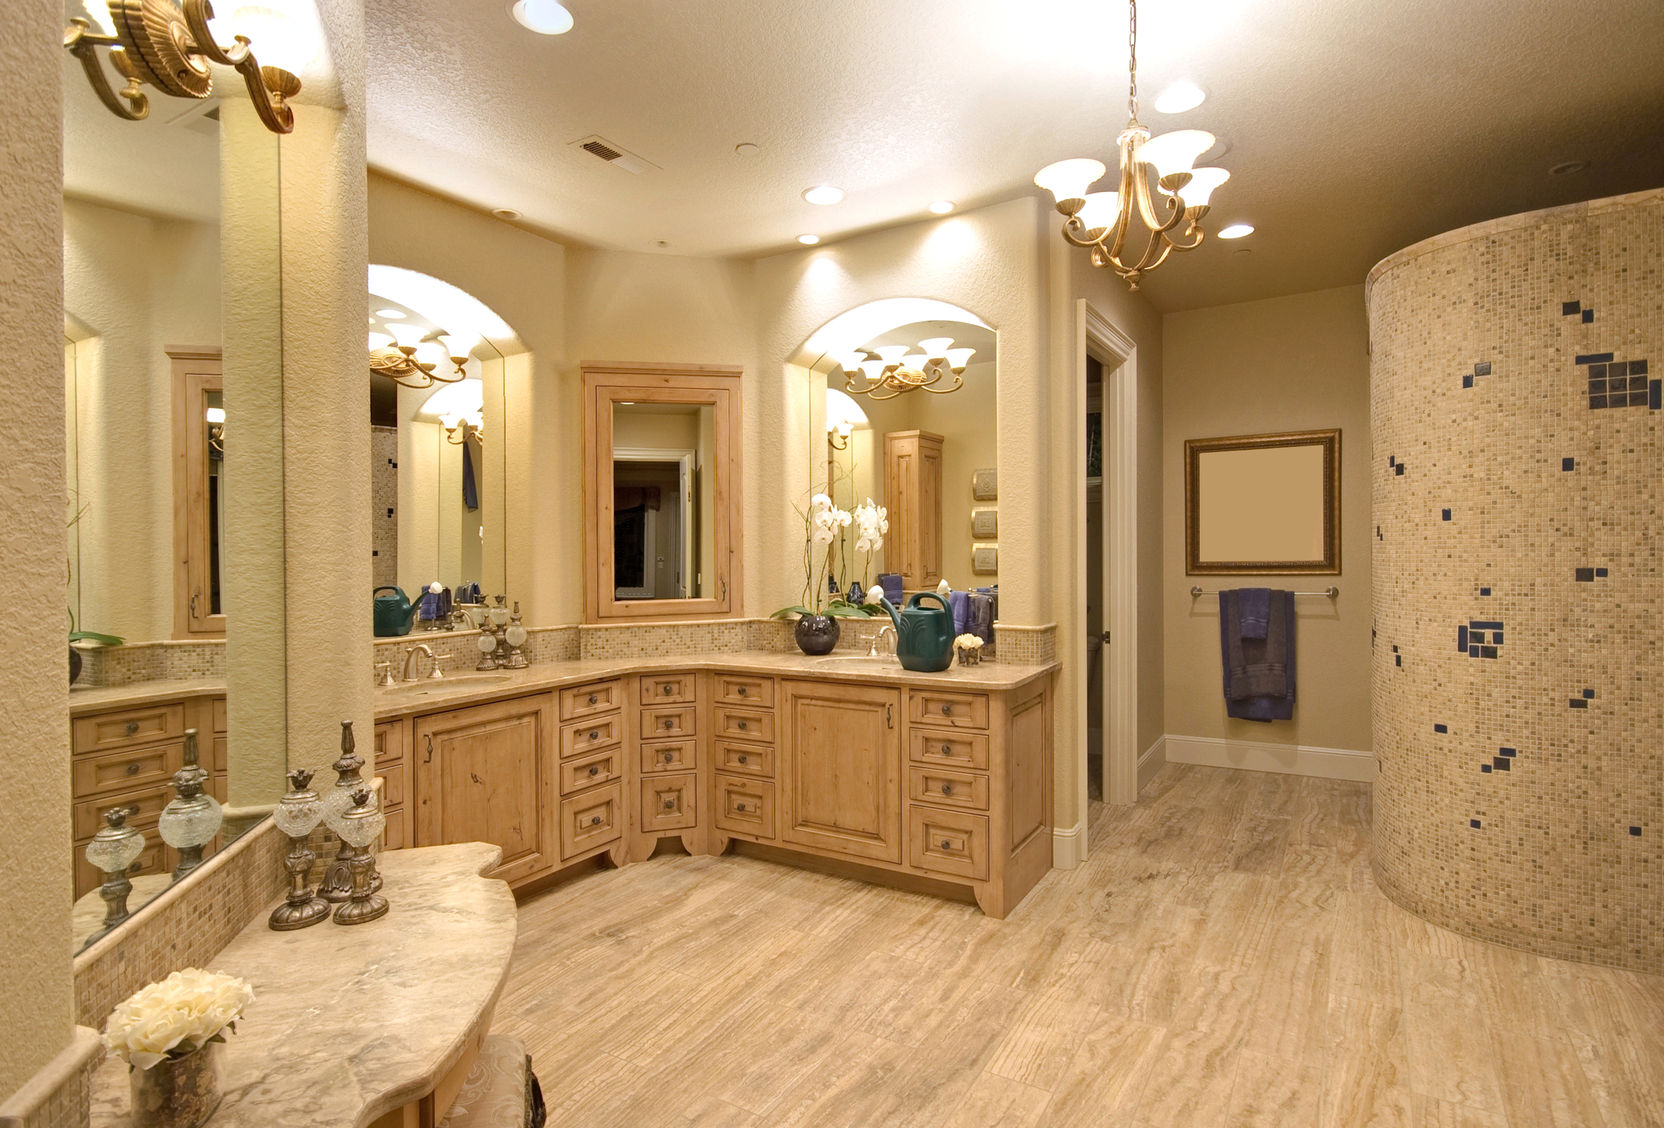 50557229 – master bathroom in newly constructed luxury home